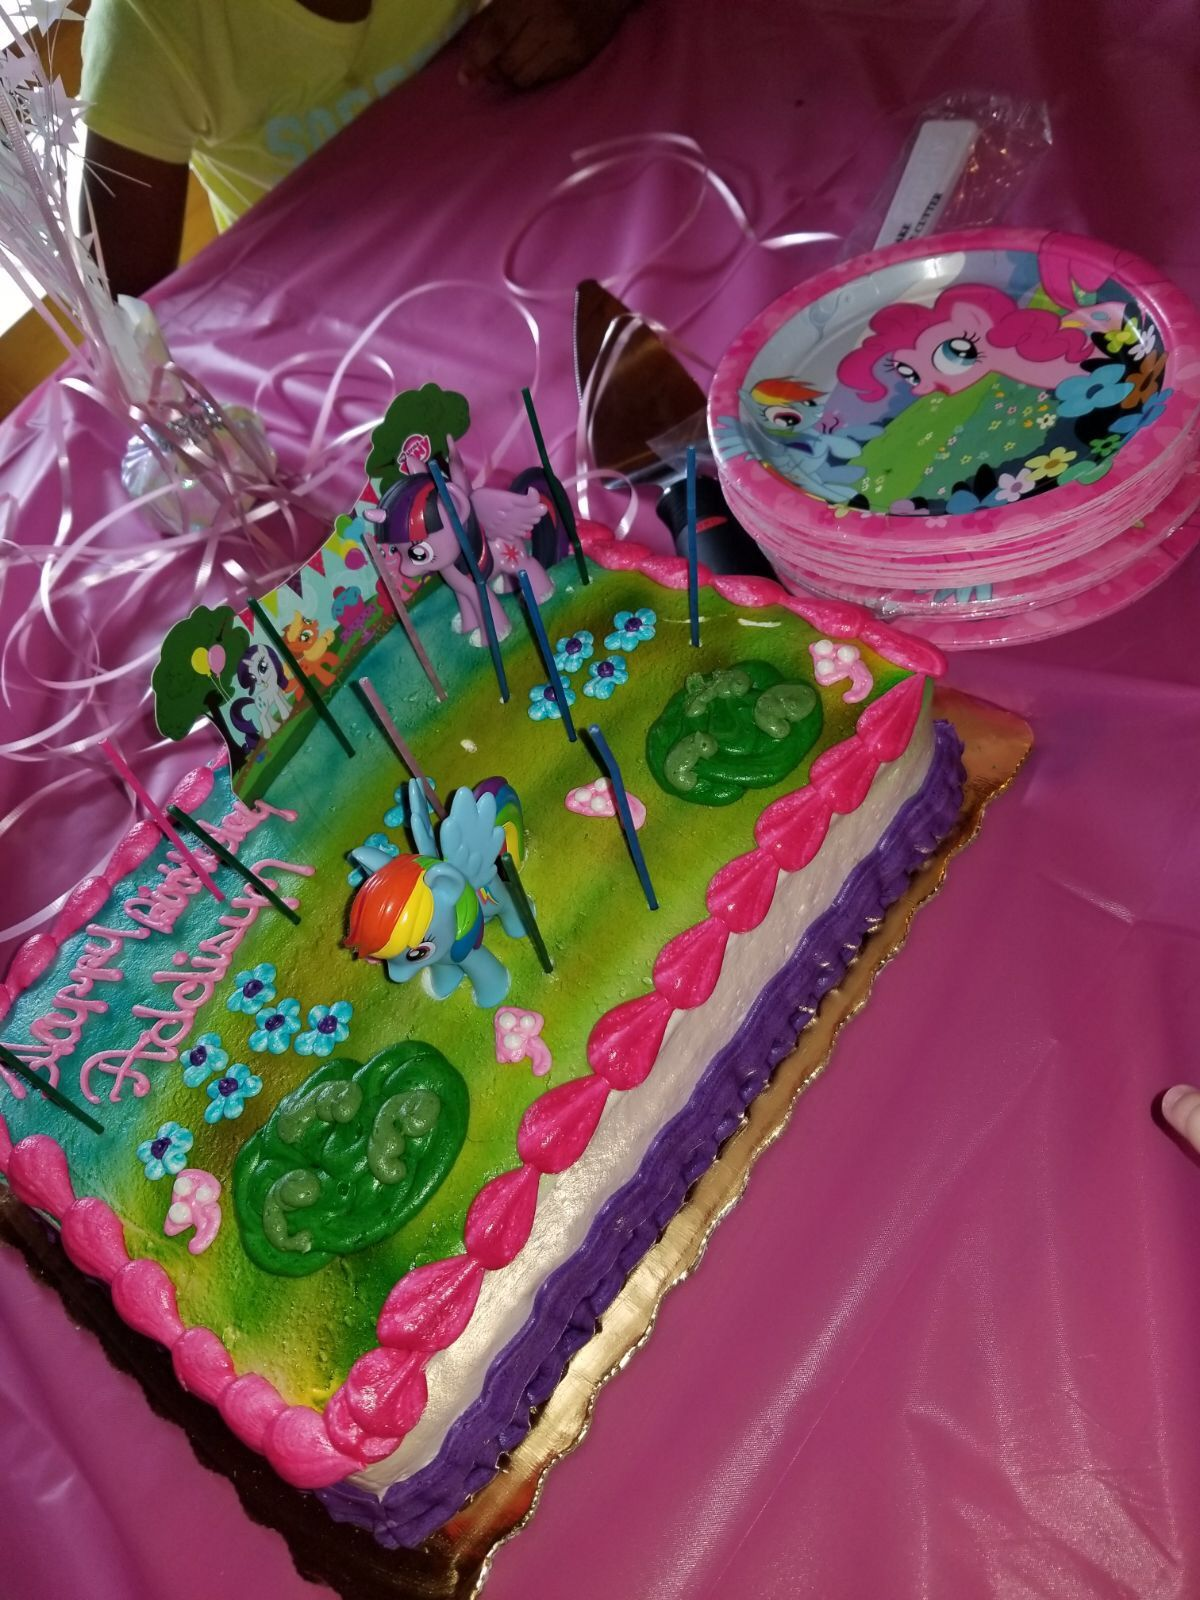 My Little Pony Cake From Publix